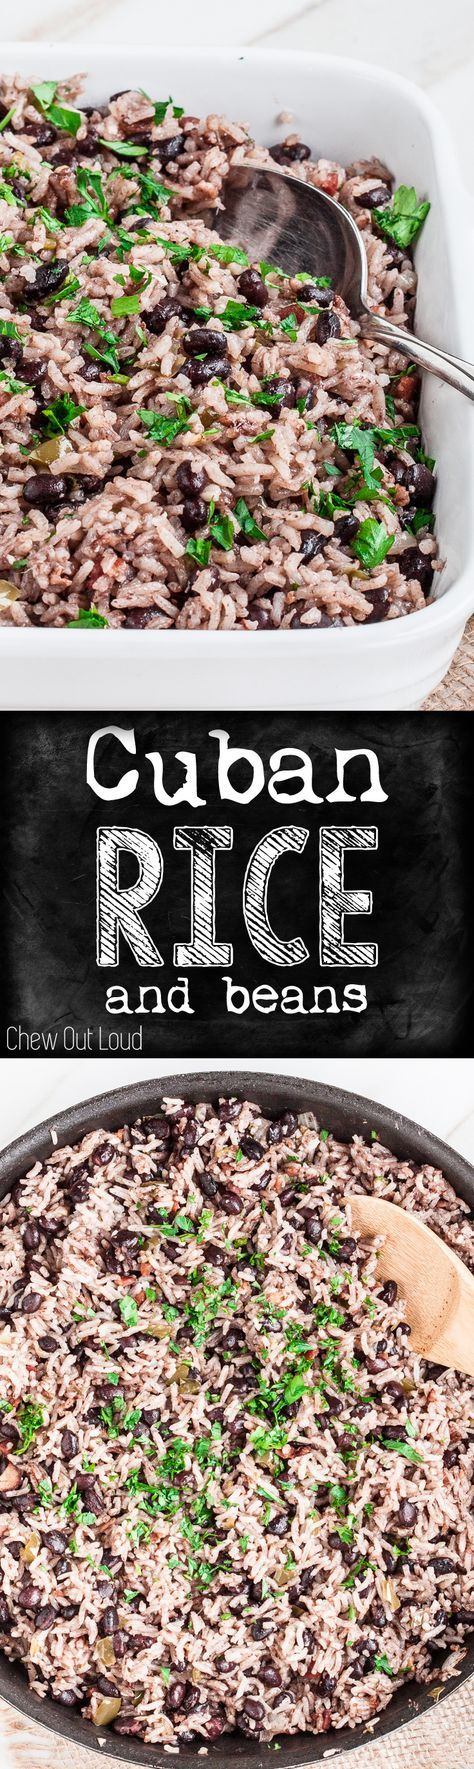 Not just any rice. This is full of amazing flavor. Fluffy, tender, crazy delicious. Can be completely made the night before. #cuban #rice #side